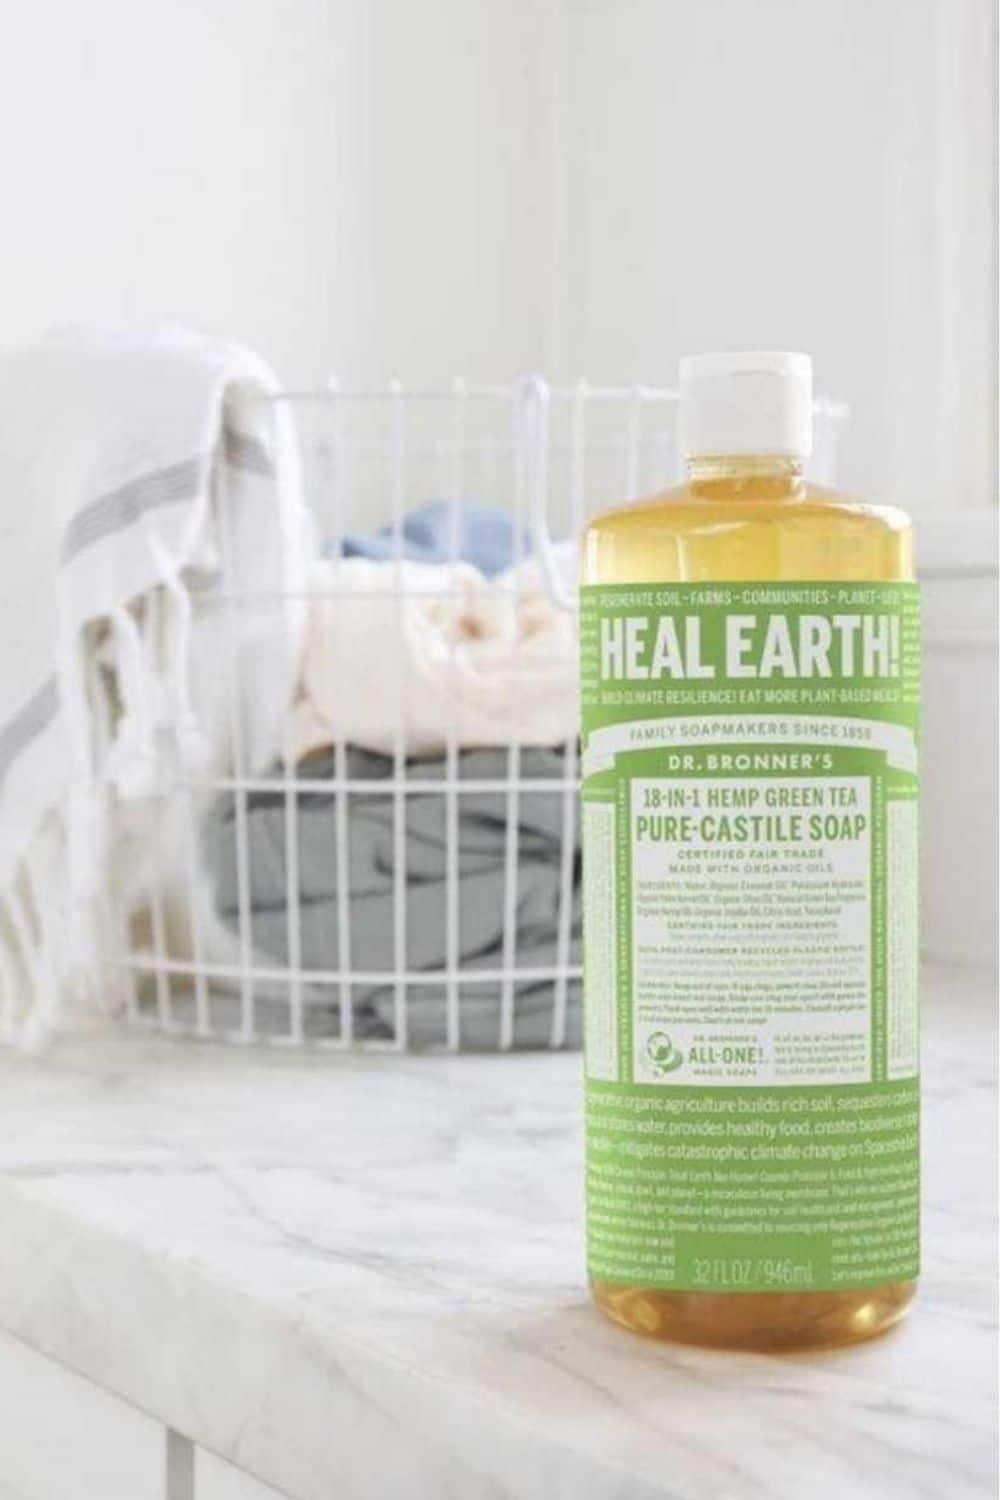 Zero Waste Laundry Detergent Image by Dr Bronners #zerowastelaundrydetegent #zerowastelaundry #sustainablejungle